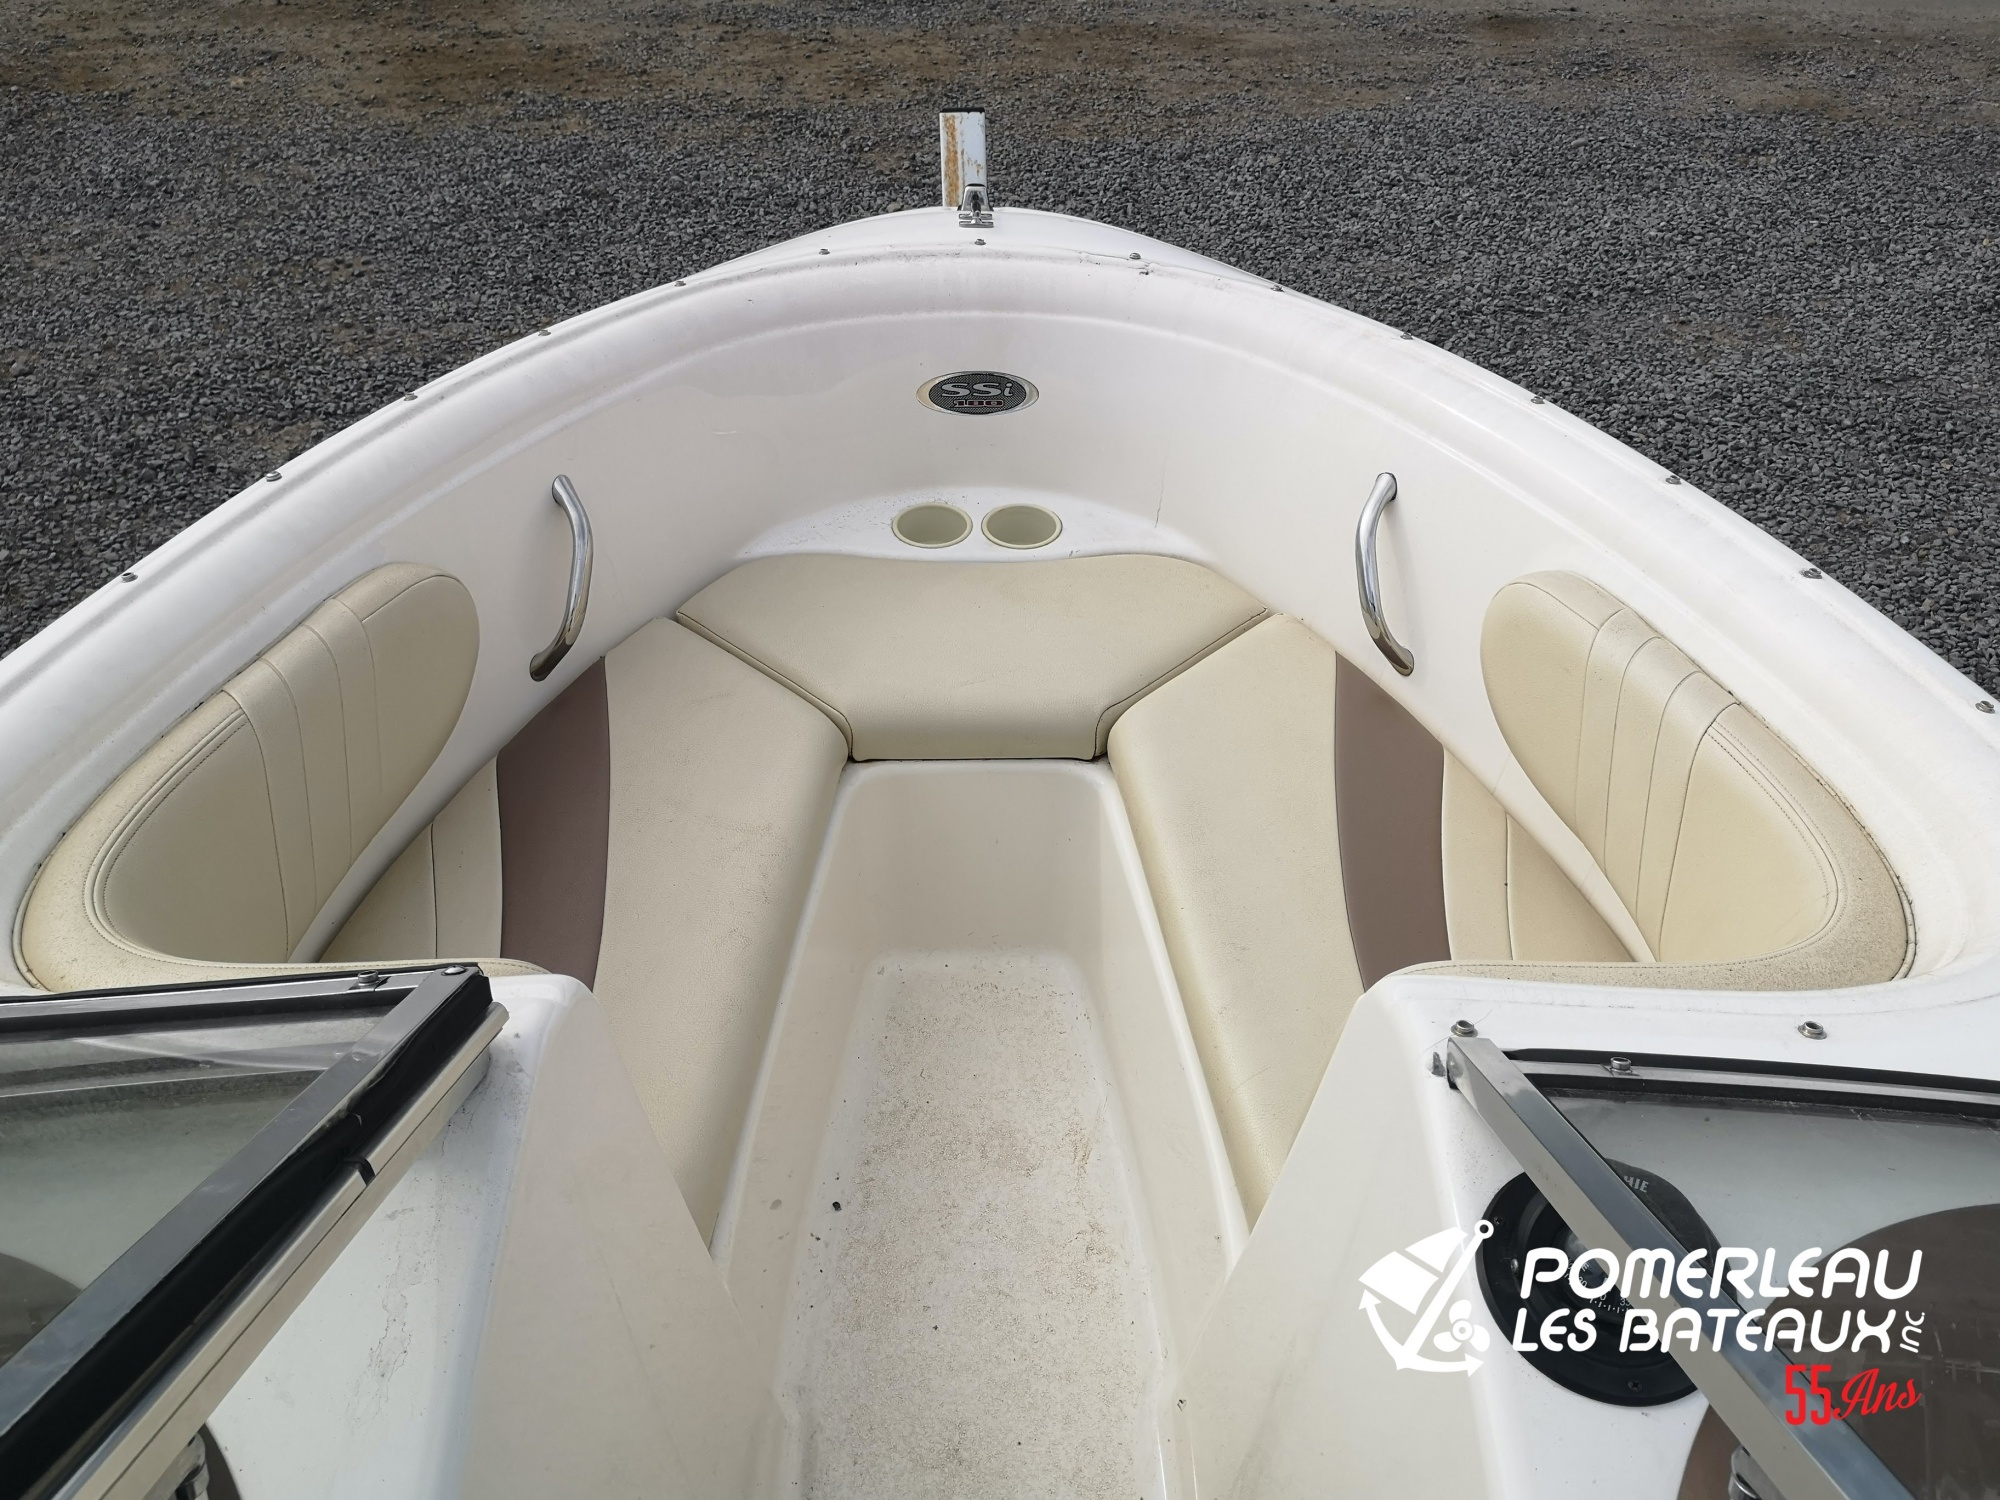 Chaparral 180 SSI - IMG_20210819_155955